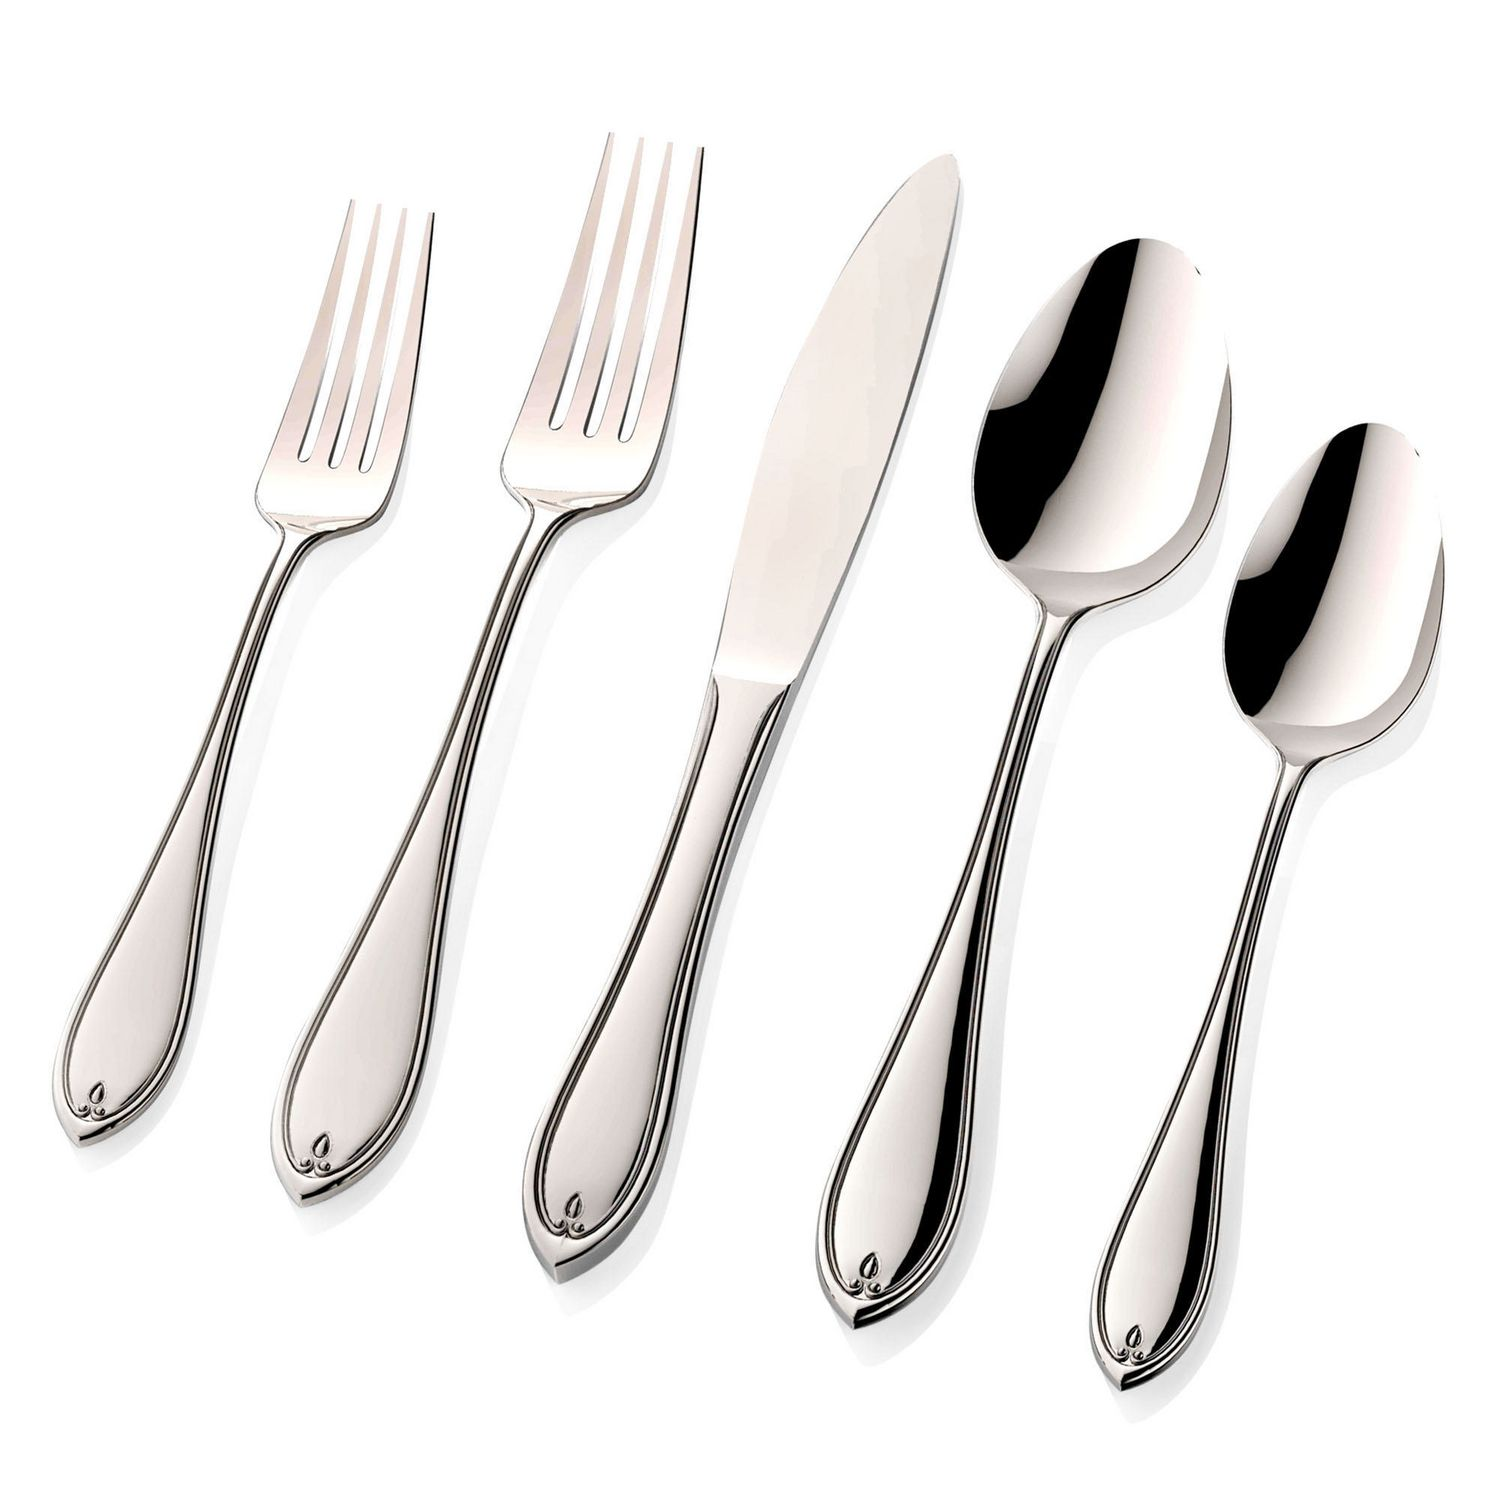 Fantastic hampton silversmiths for kitchen and dining sets with hampton silversmiths stainless